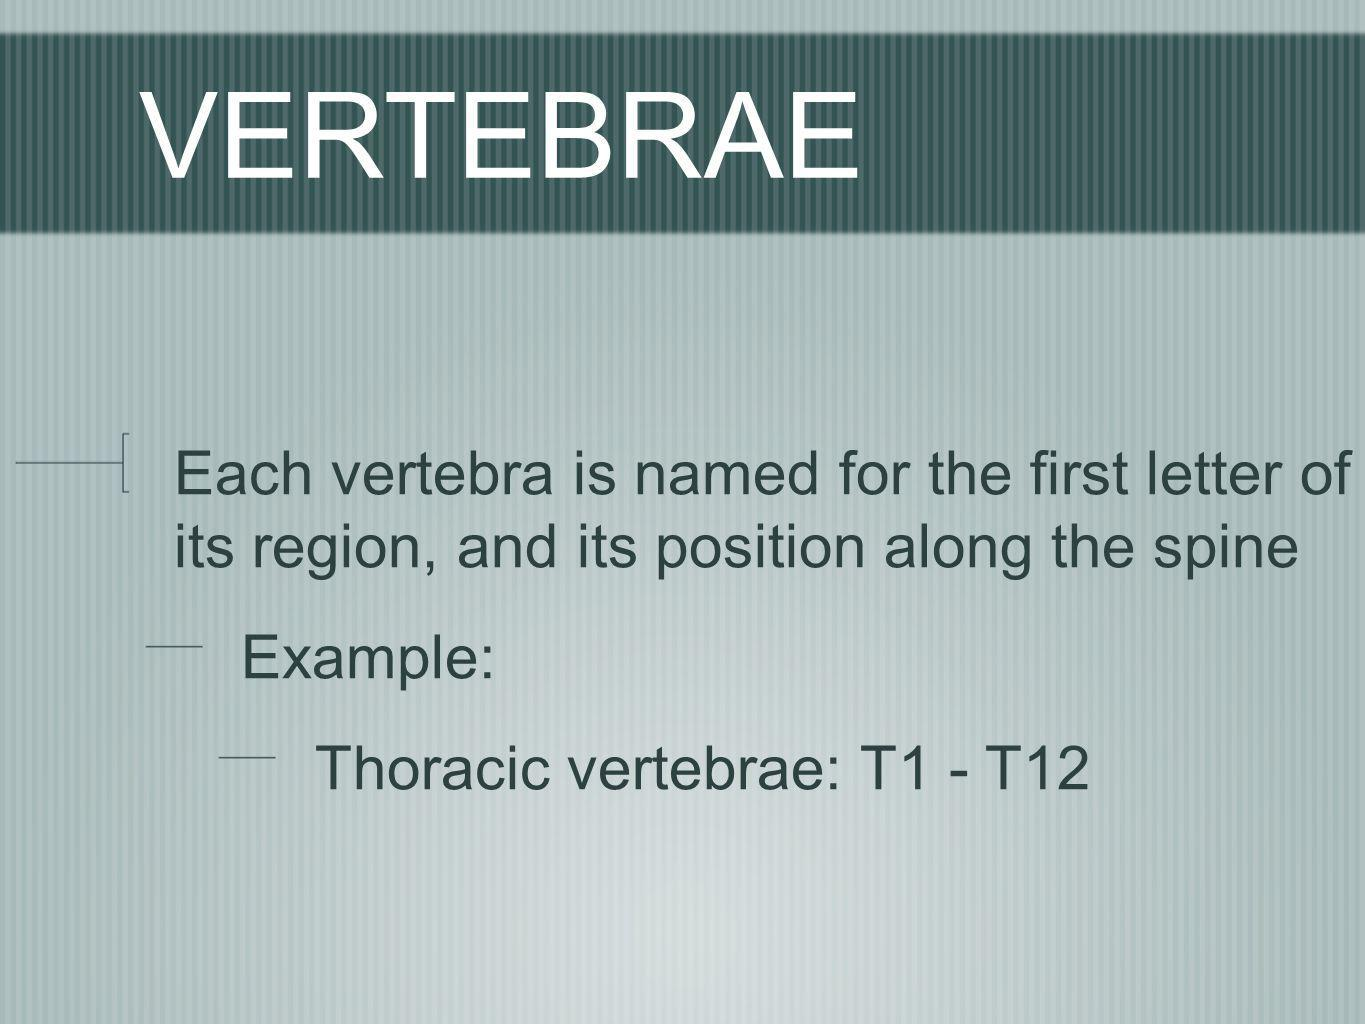 VERTEBRAE Each vertebra is named for the first letter of its region, and its position along the spine.